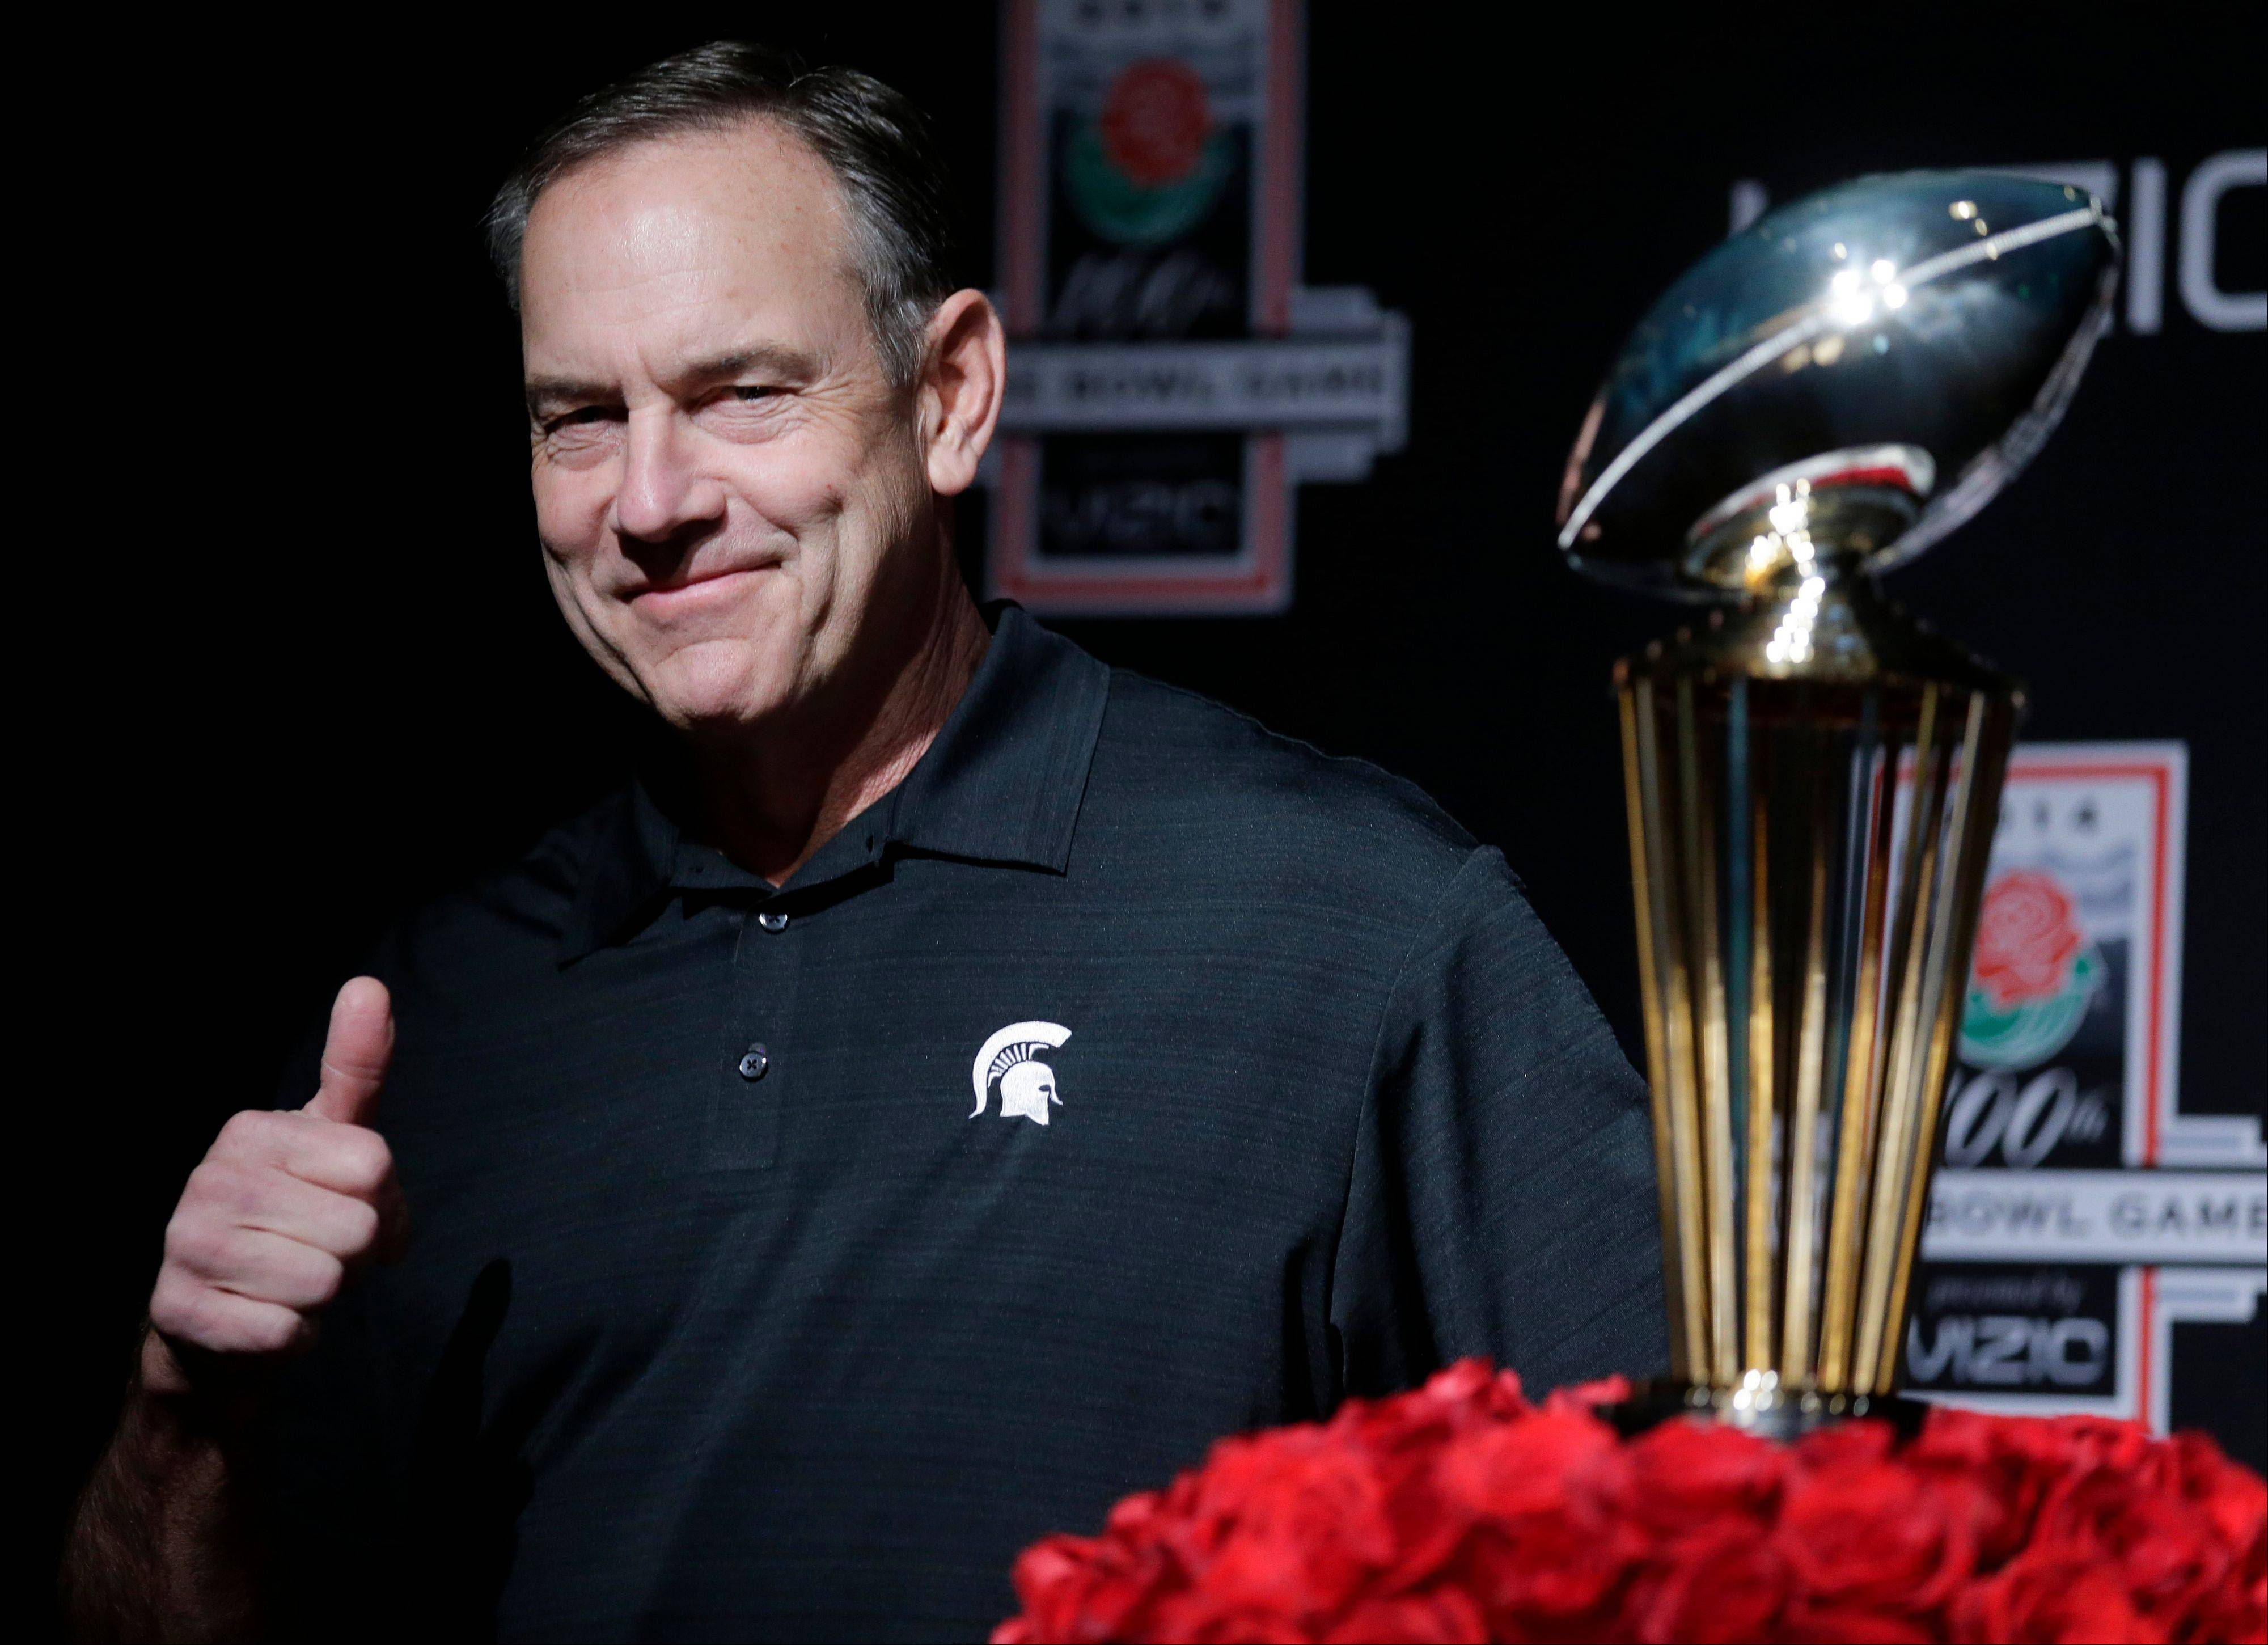 Michigan State head coach Mark Dantonio poses by the Rose Bowl trophy after a news conference Monday in Los Angeles. The Spartans will play in Pasadena Wednesday for the first time since 1988.